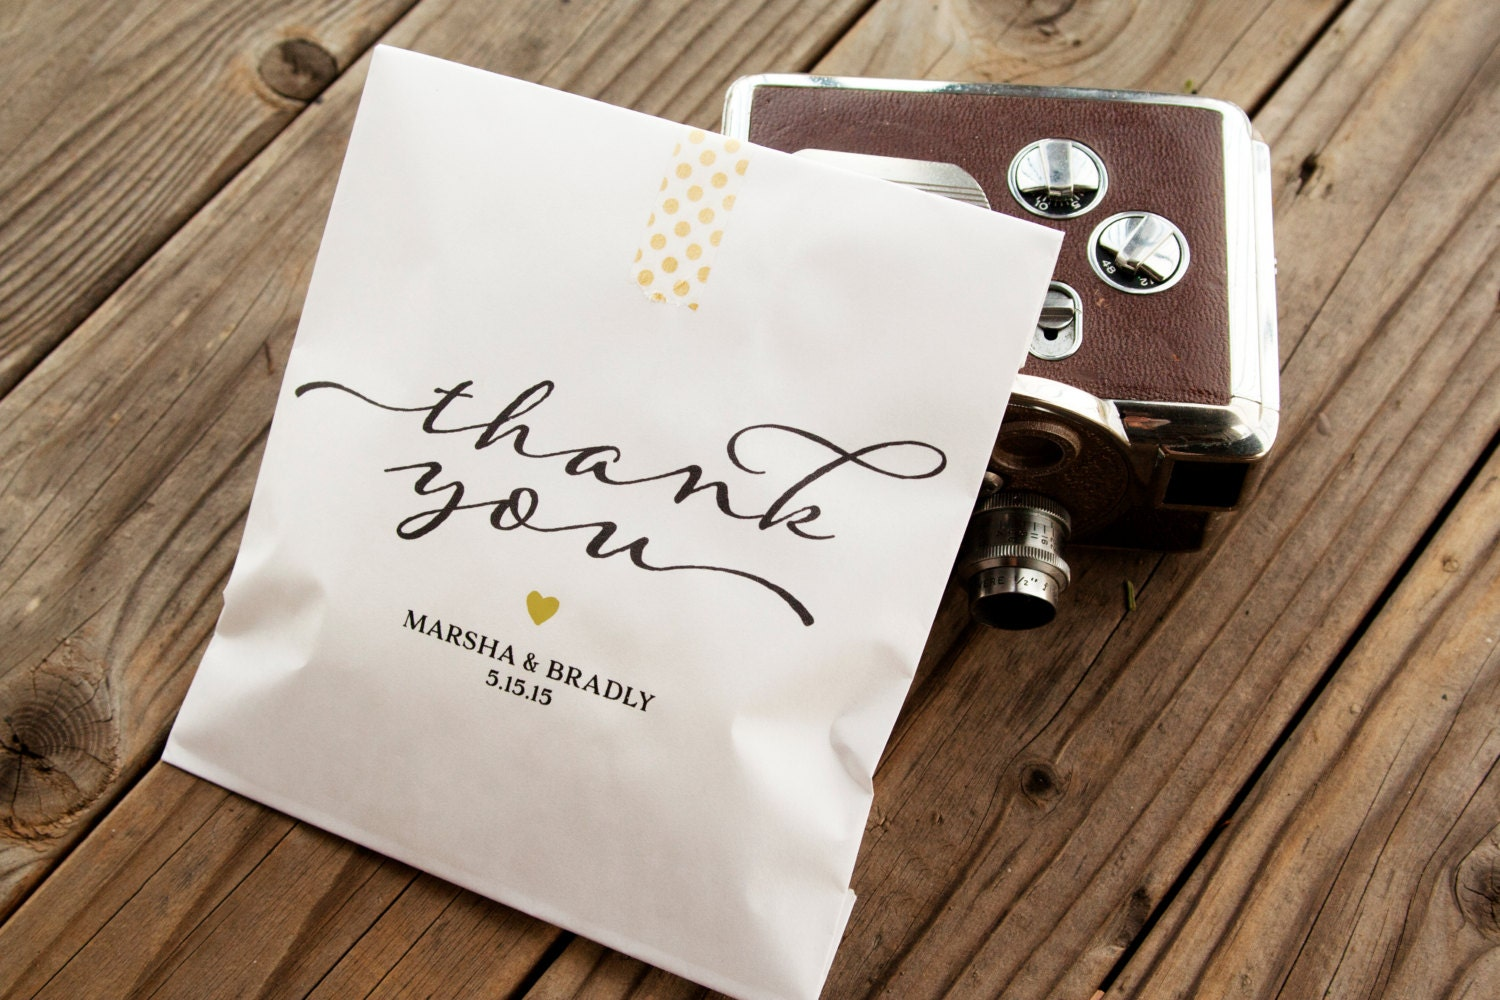 bags for wedding favors - Wedding Decor Ideas